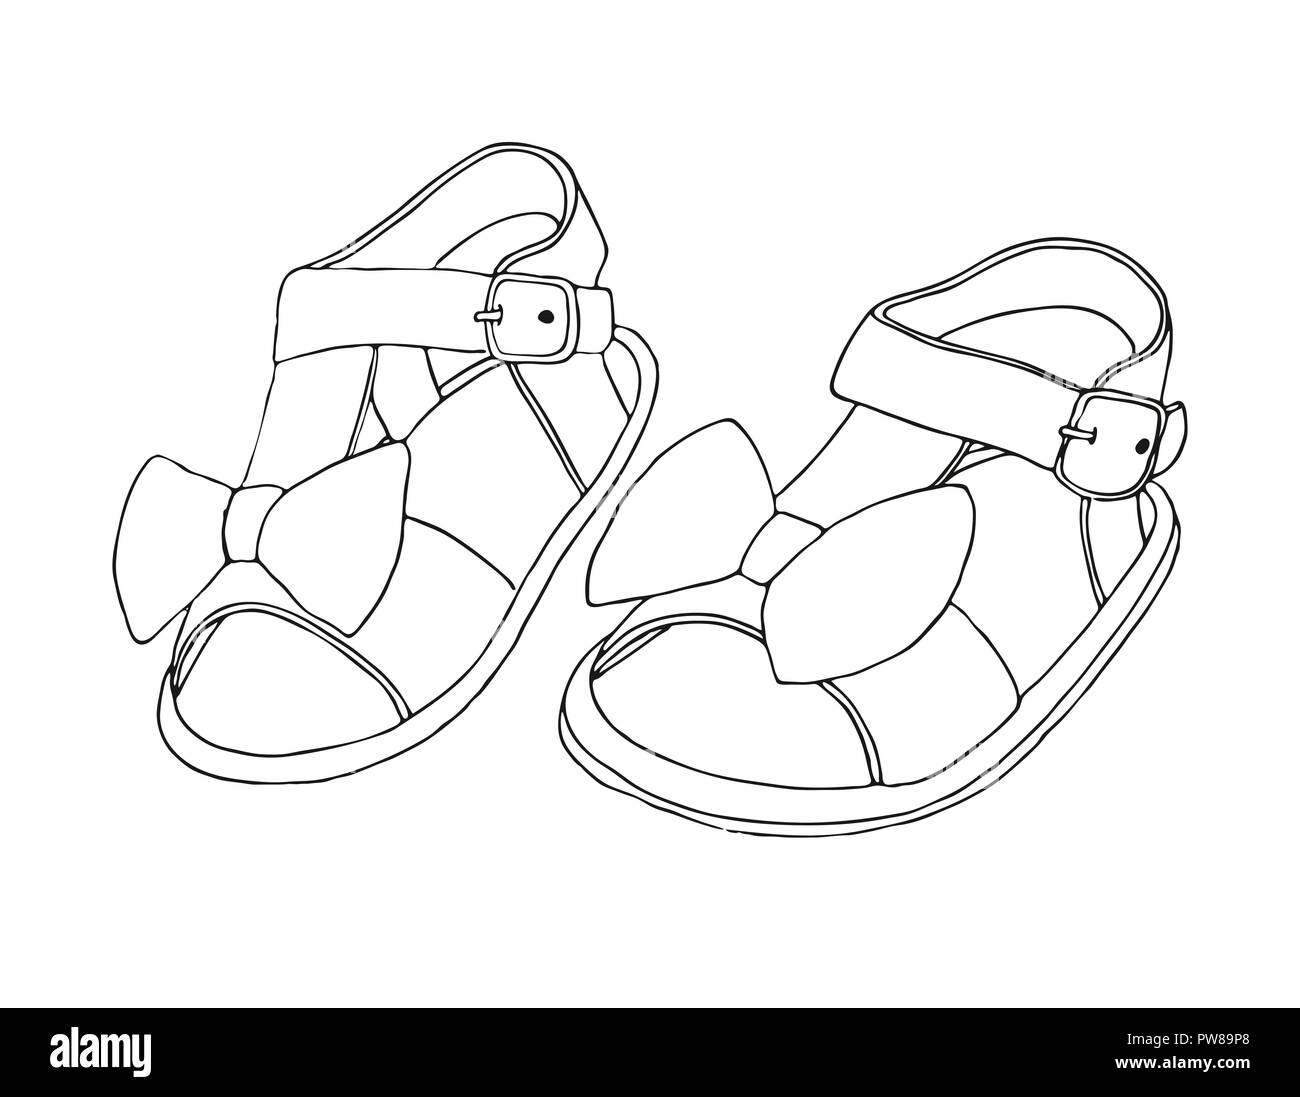 3804166a59ee2 Sketch of children's sandals for girls. Vector illustration Stock ...